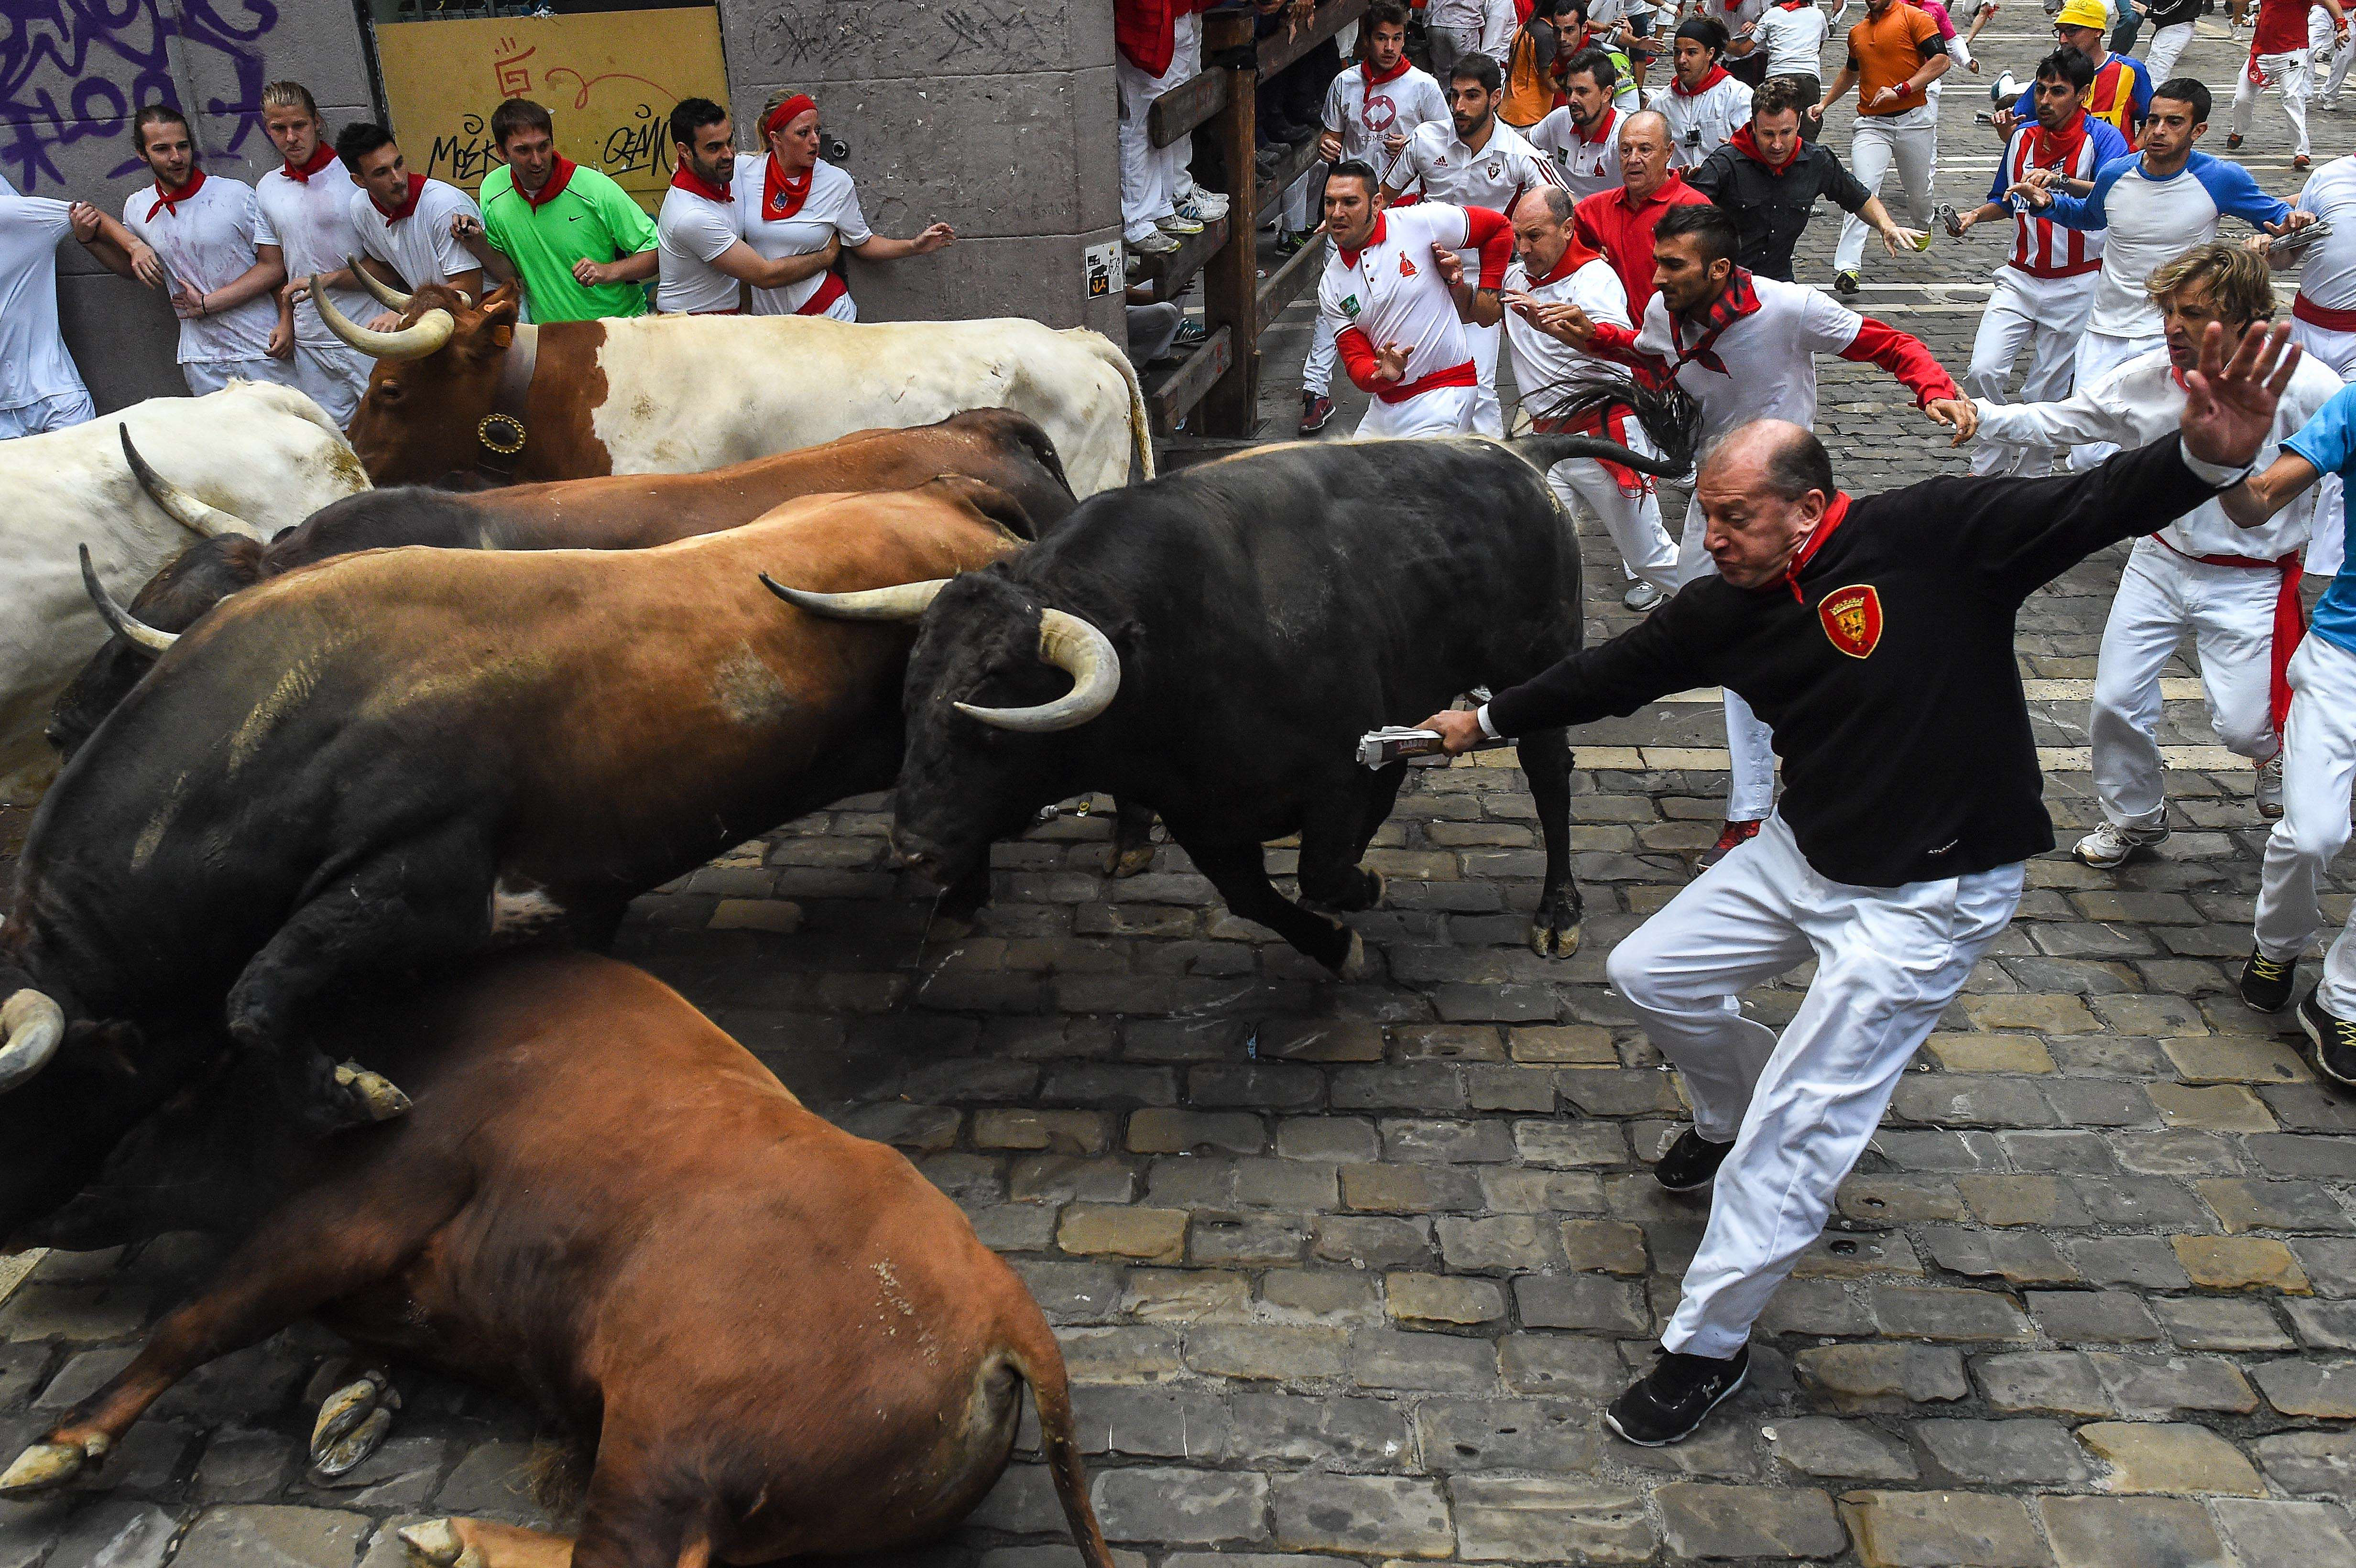 Video Shows Brutal Reality Of Bull Running, As Spain Sees Third Goring Death GettyImages 479854010